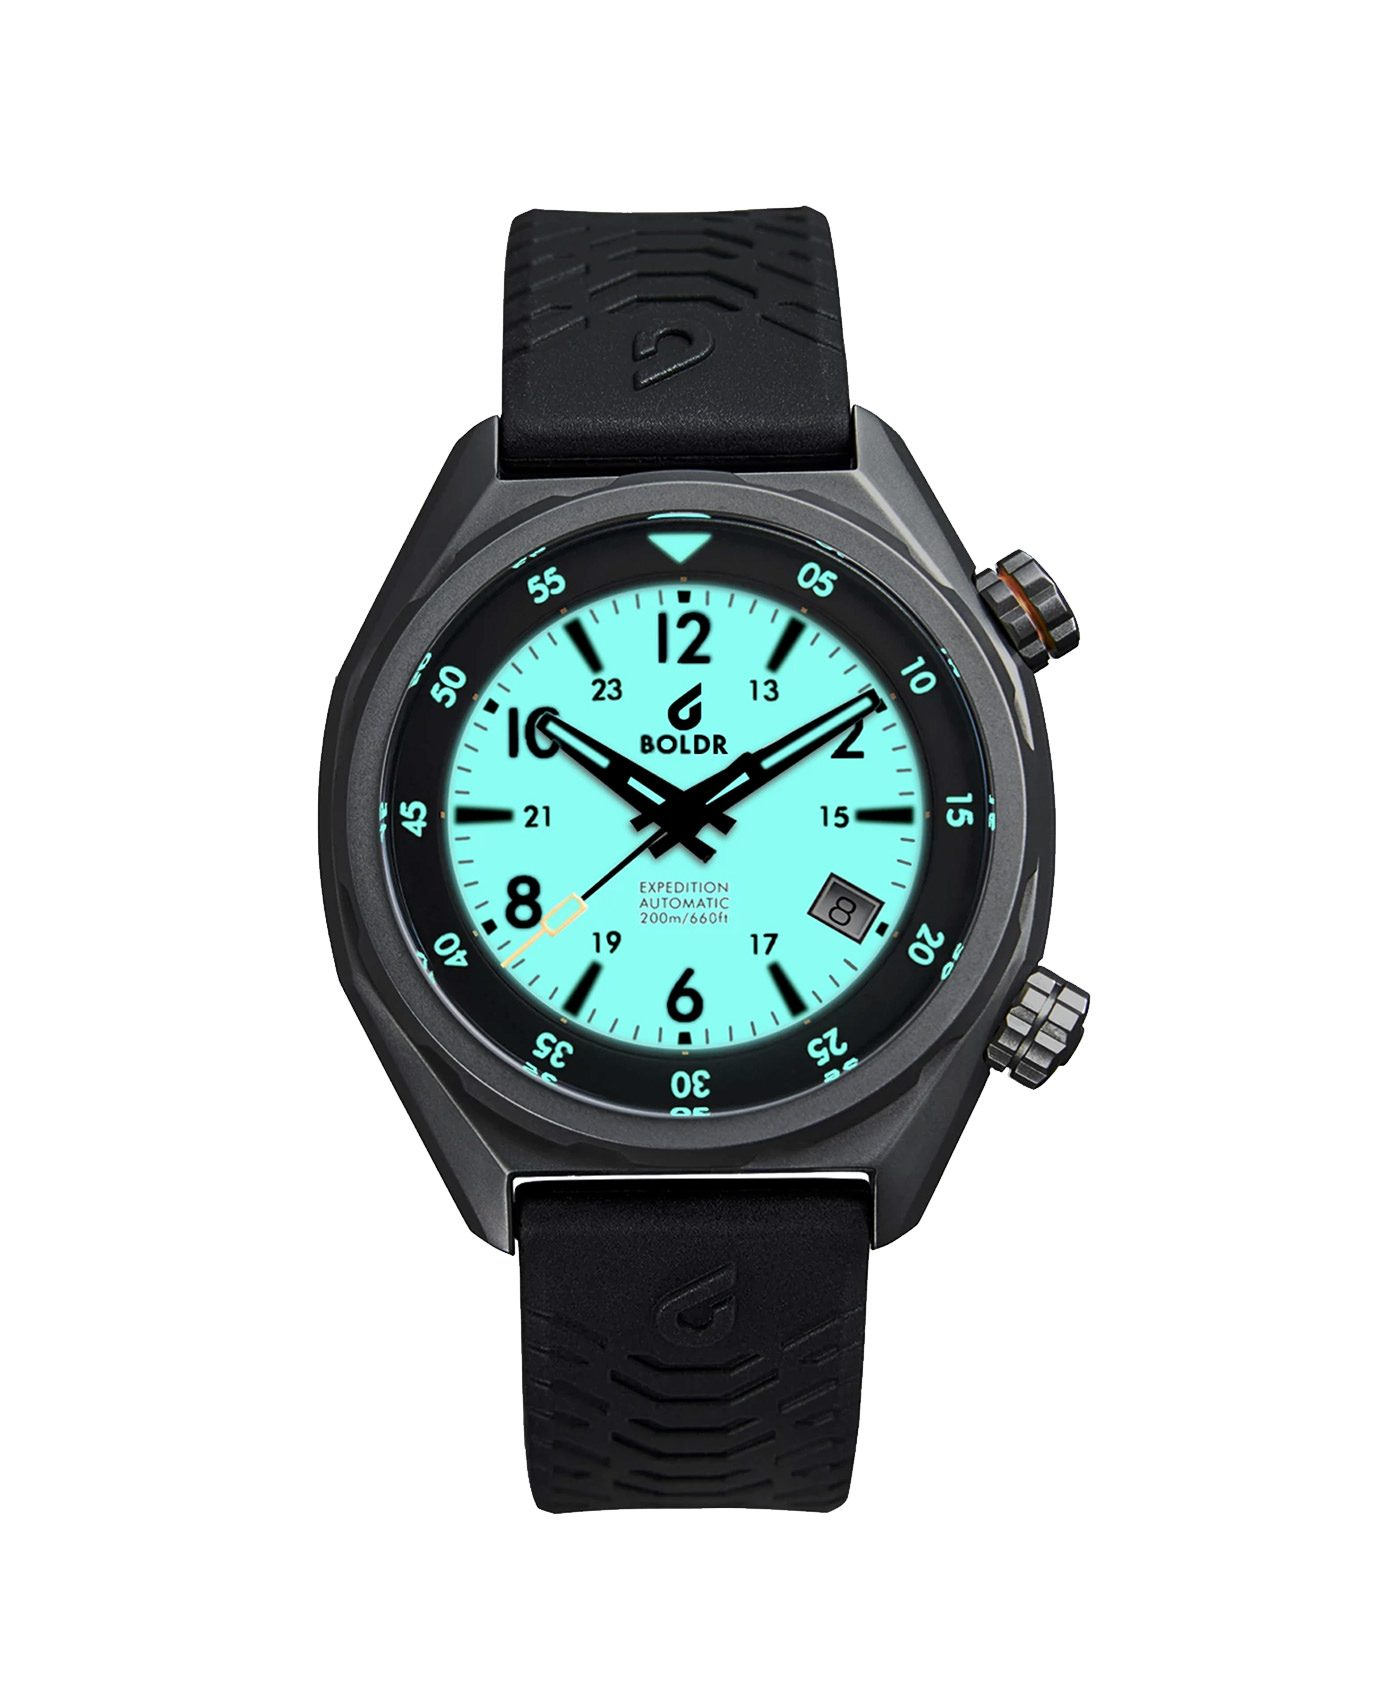 WB Boldr Expedition eiger lume